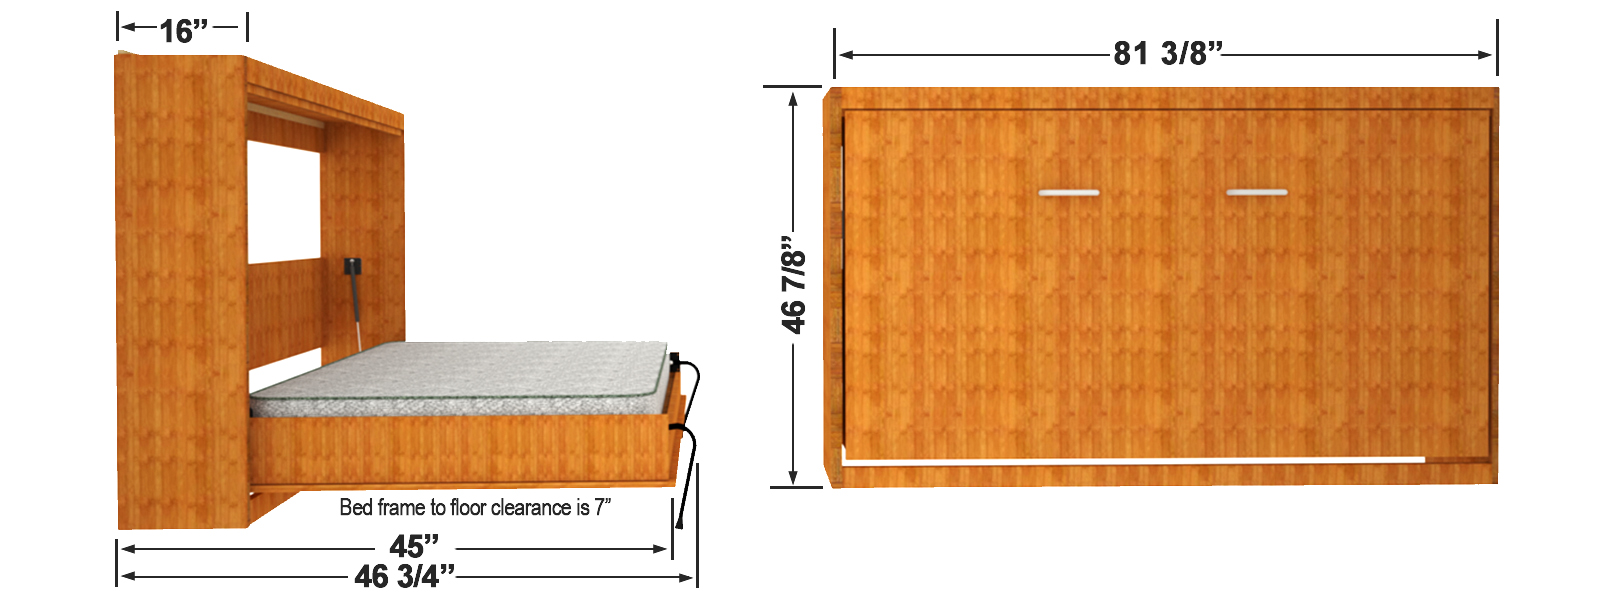 Single size wall bed finished dimensions